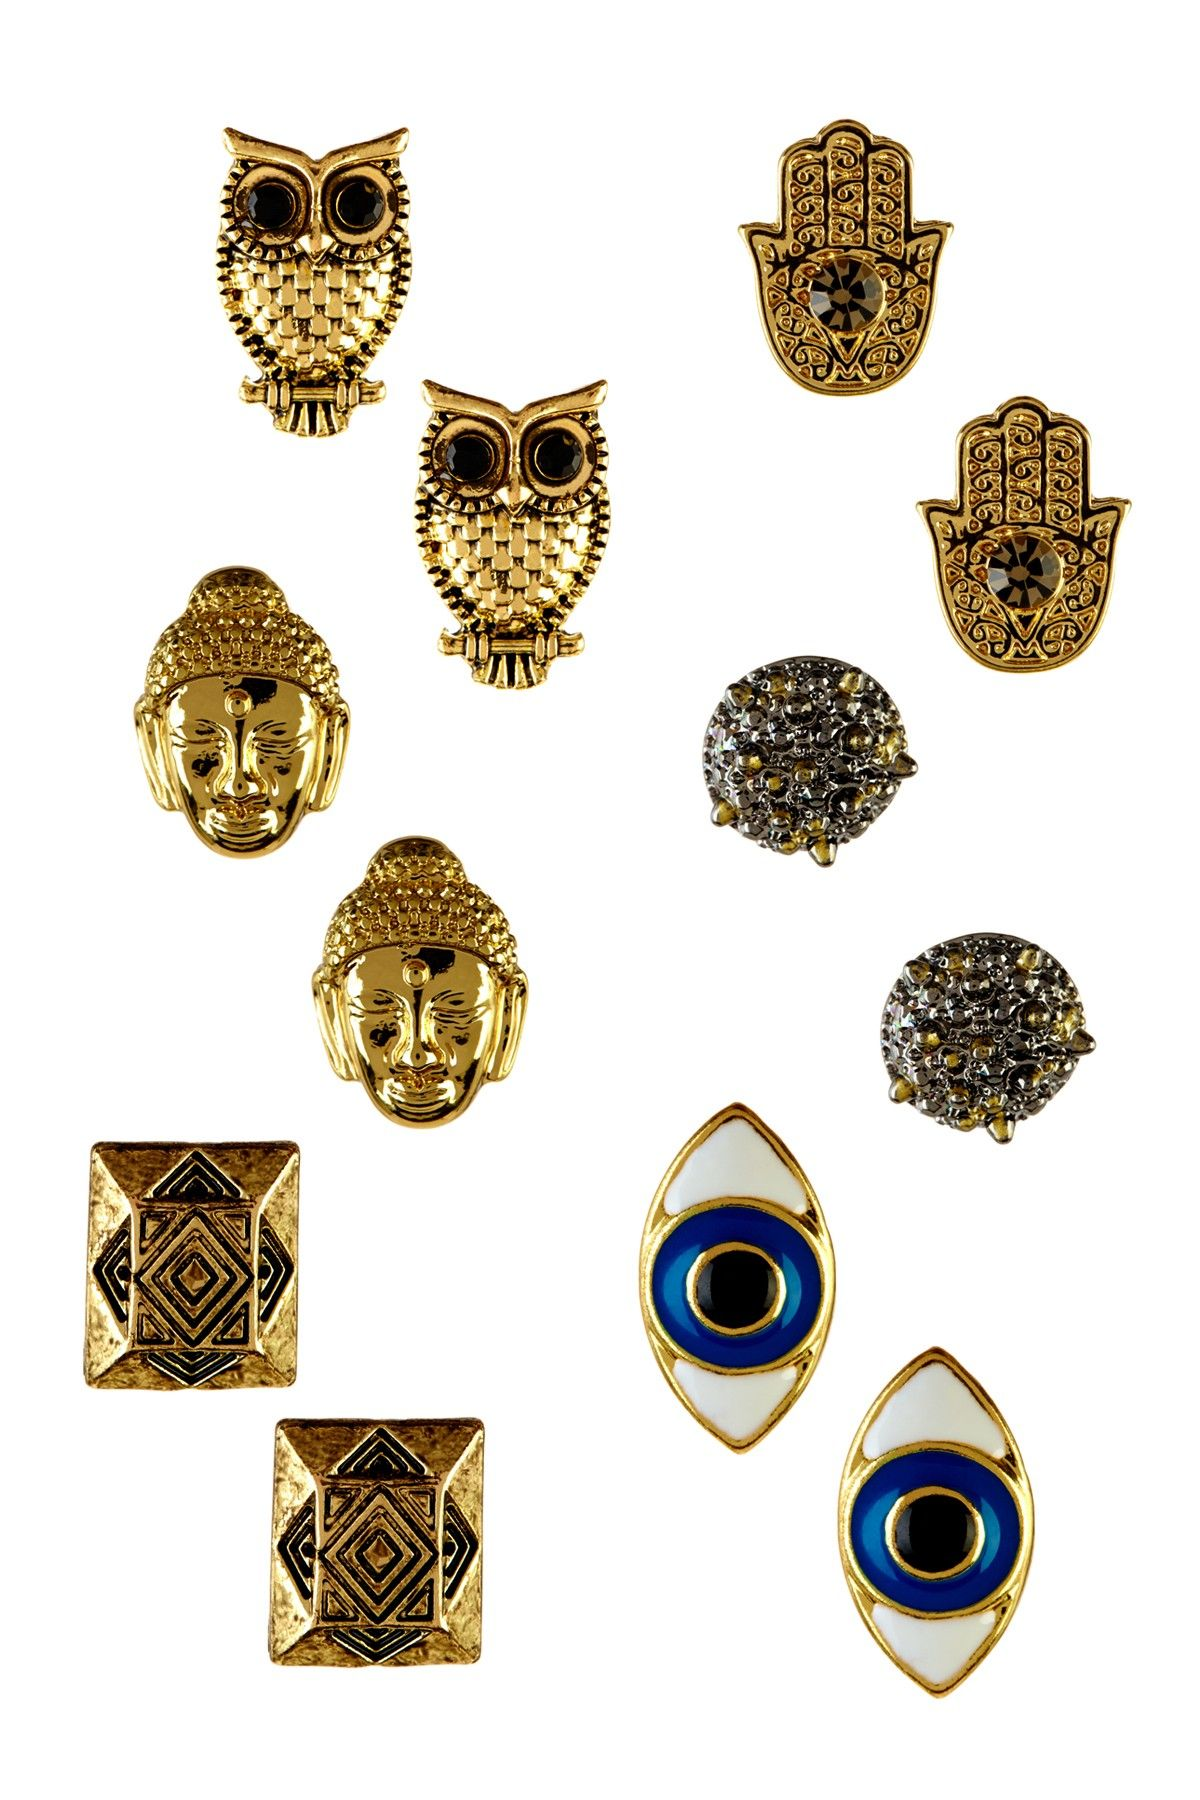 Pipa Swarovski Crystal Stud Gold Earrings Set - owls, Buddha, evil eye, oh my!